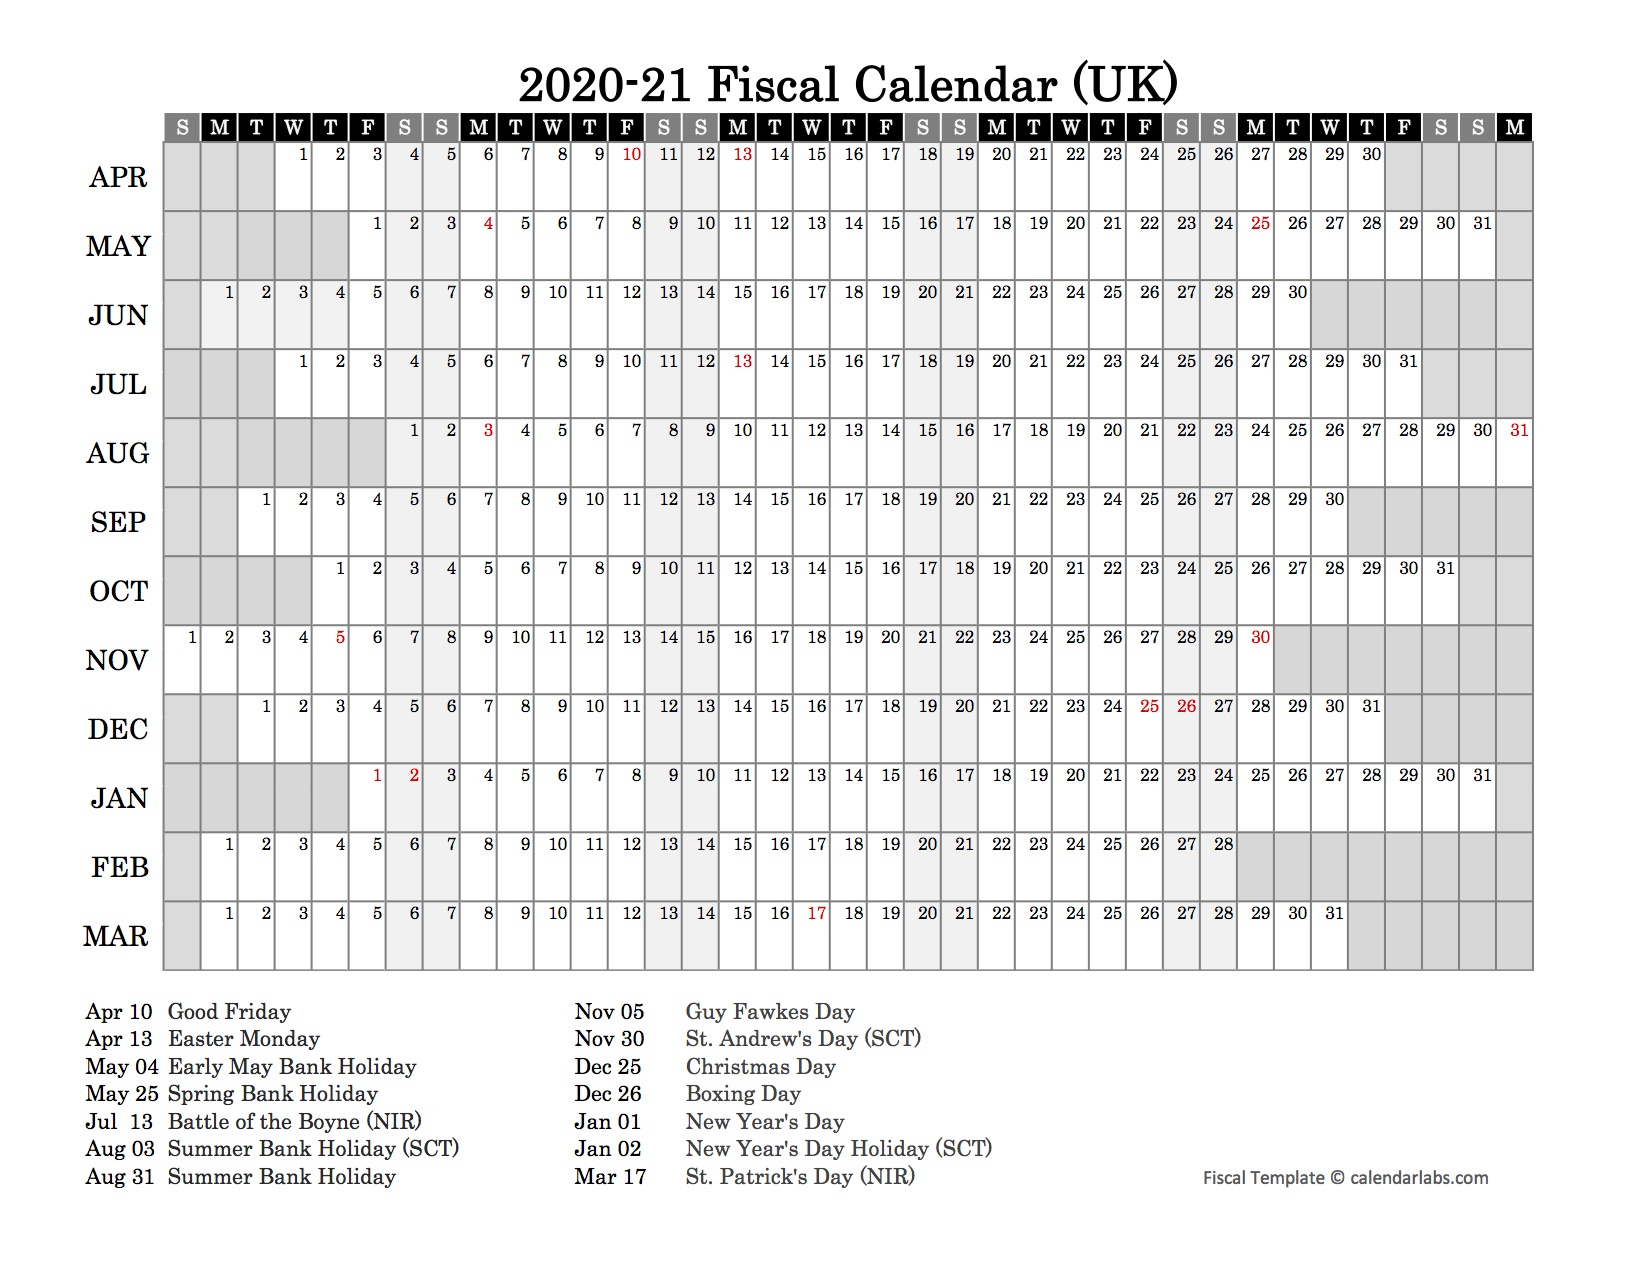 2020 Fiscal Year Calendar - Free Printable Templates